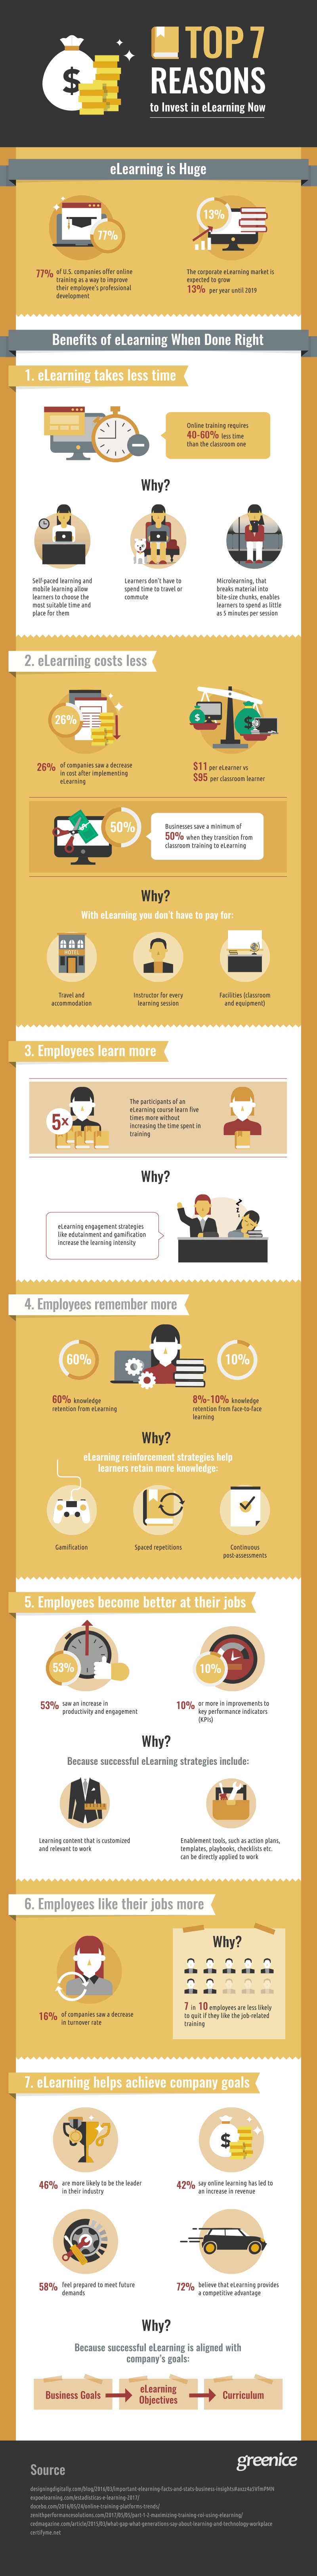 Top 7 Reasons to Invest in eLearning Now Infographic